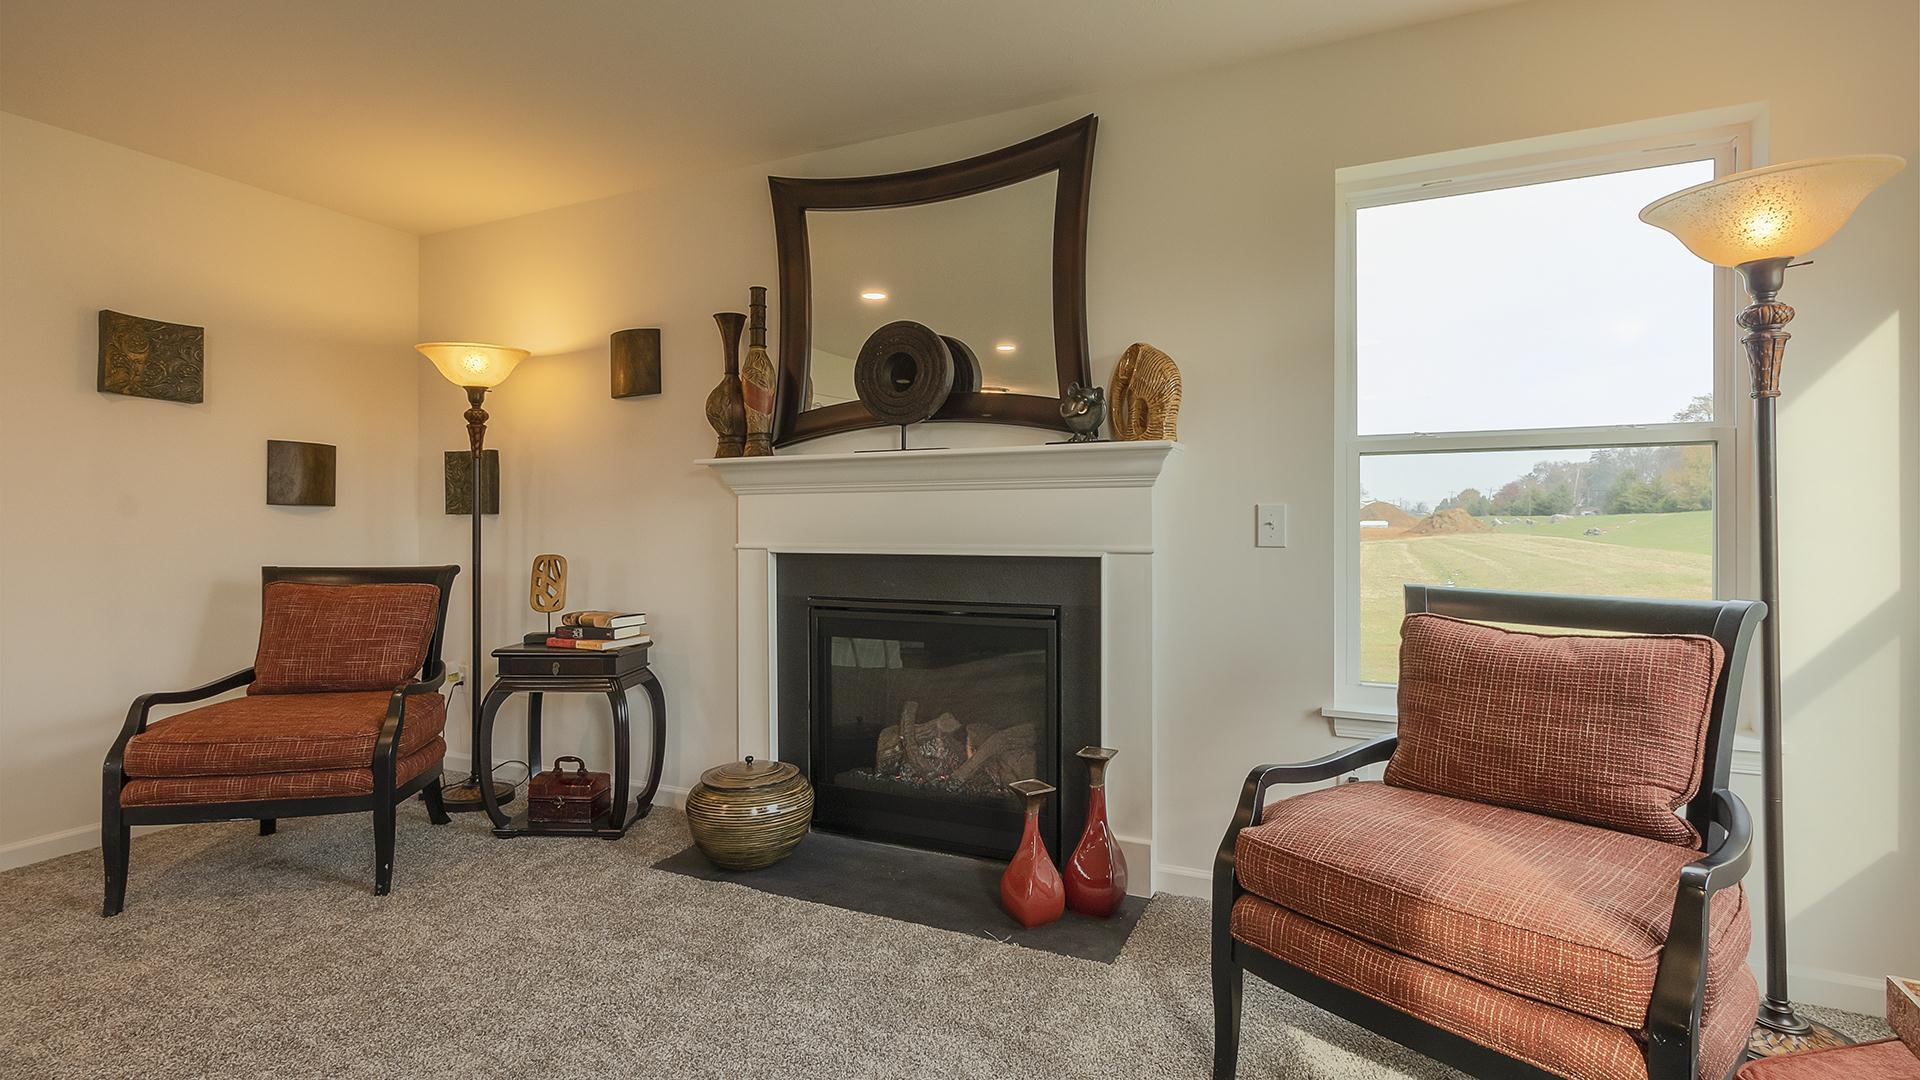 Living Area featured in the Rosewood By S & A Homes in Altoona, PA